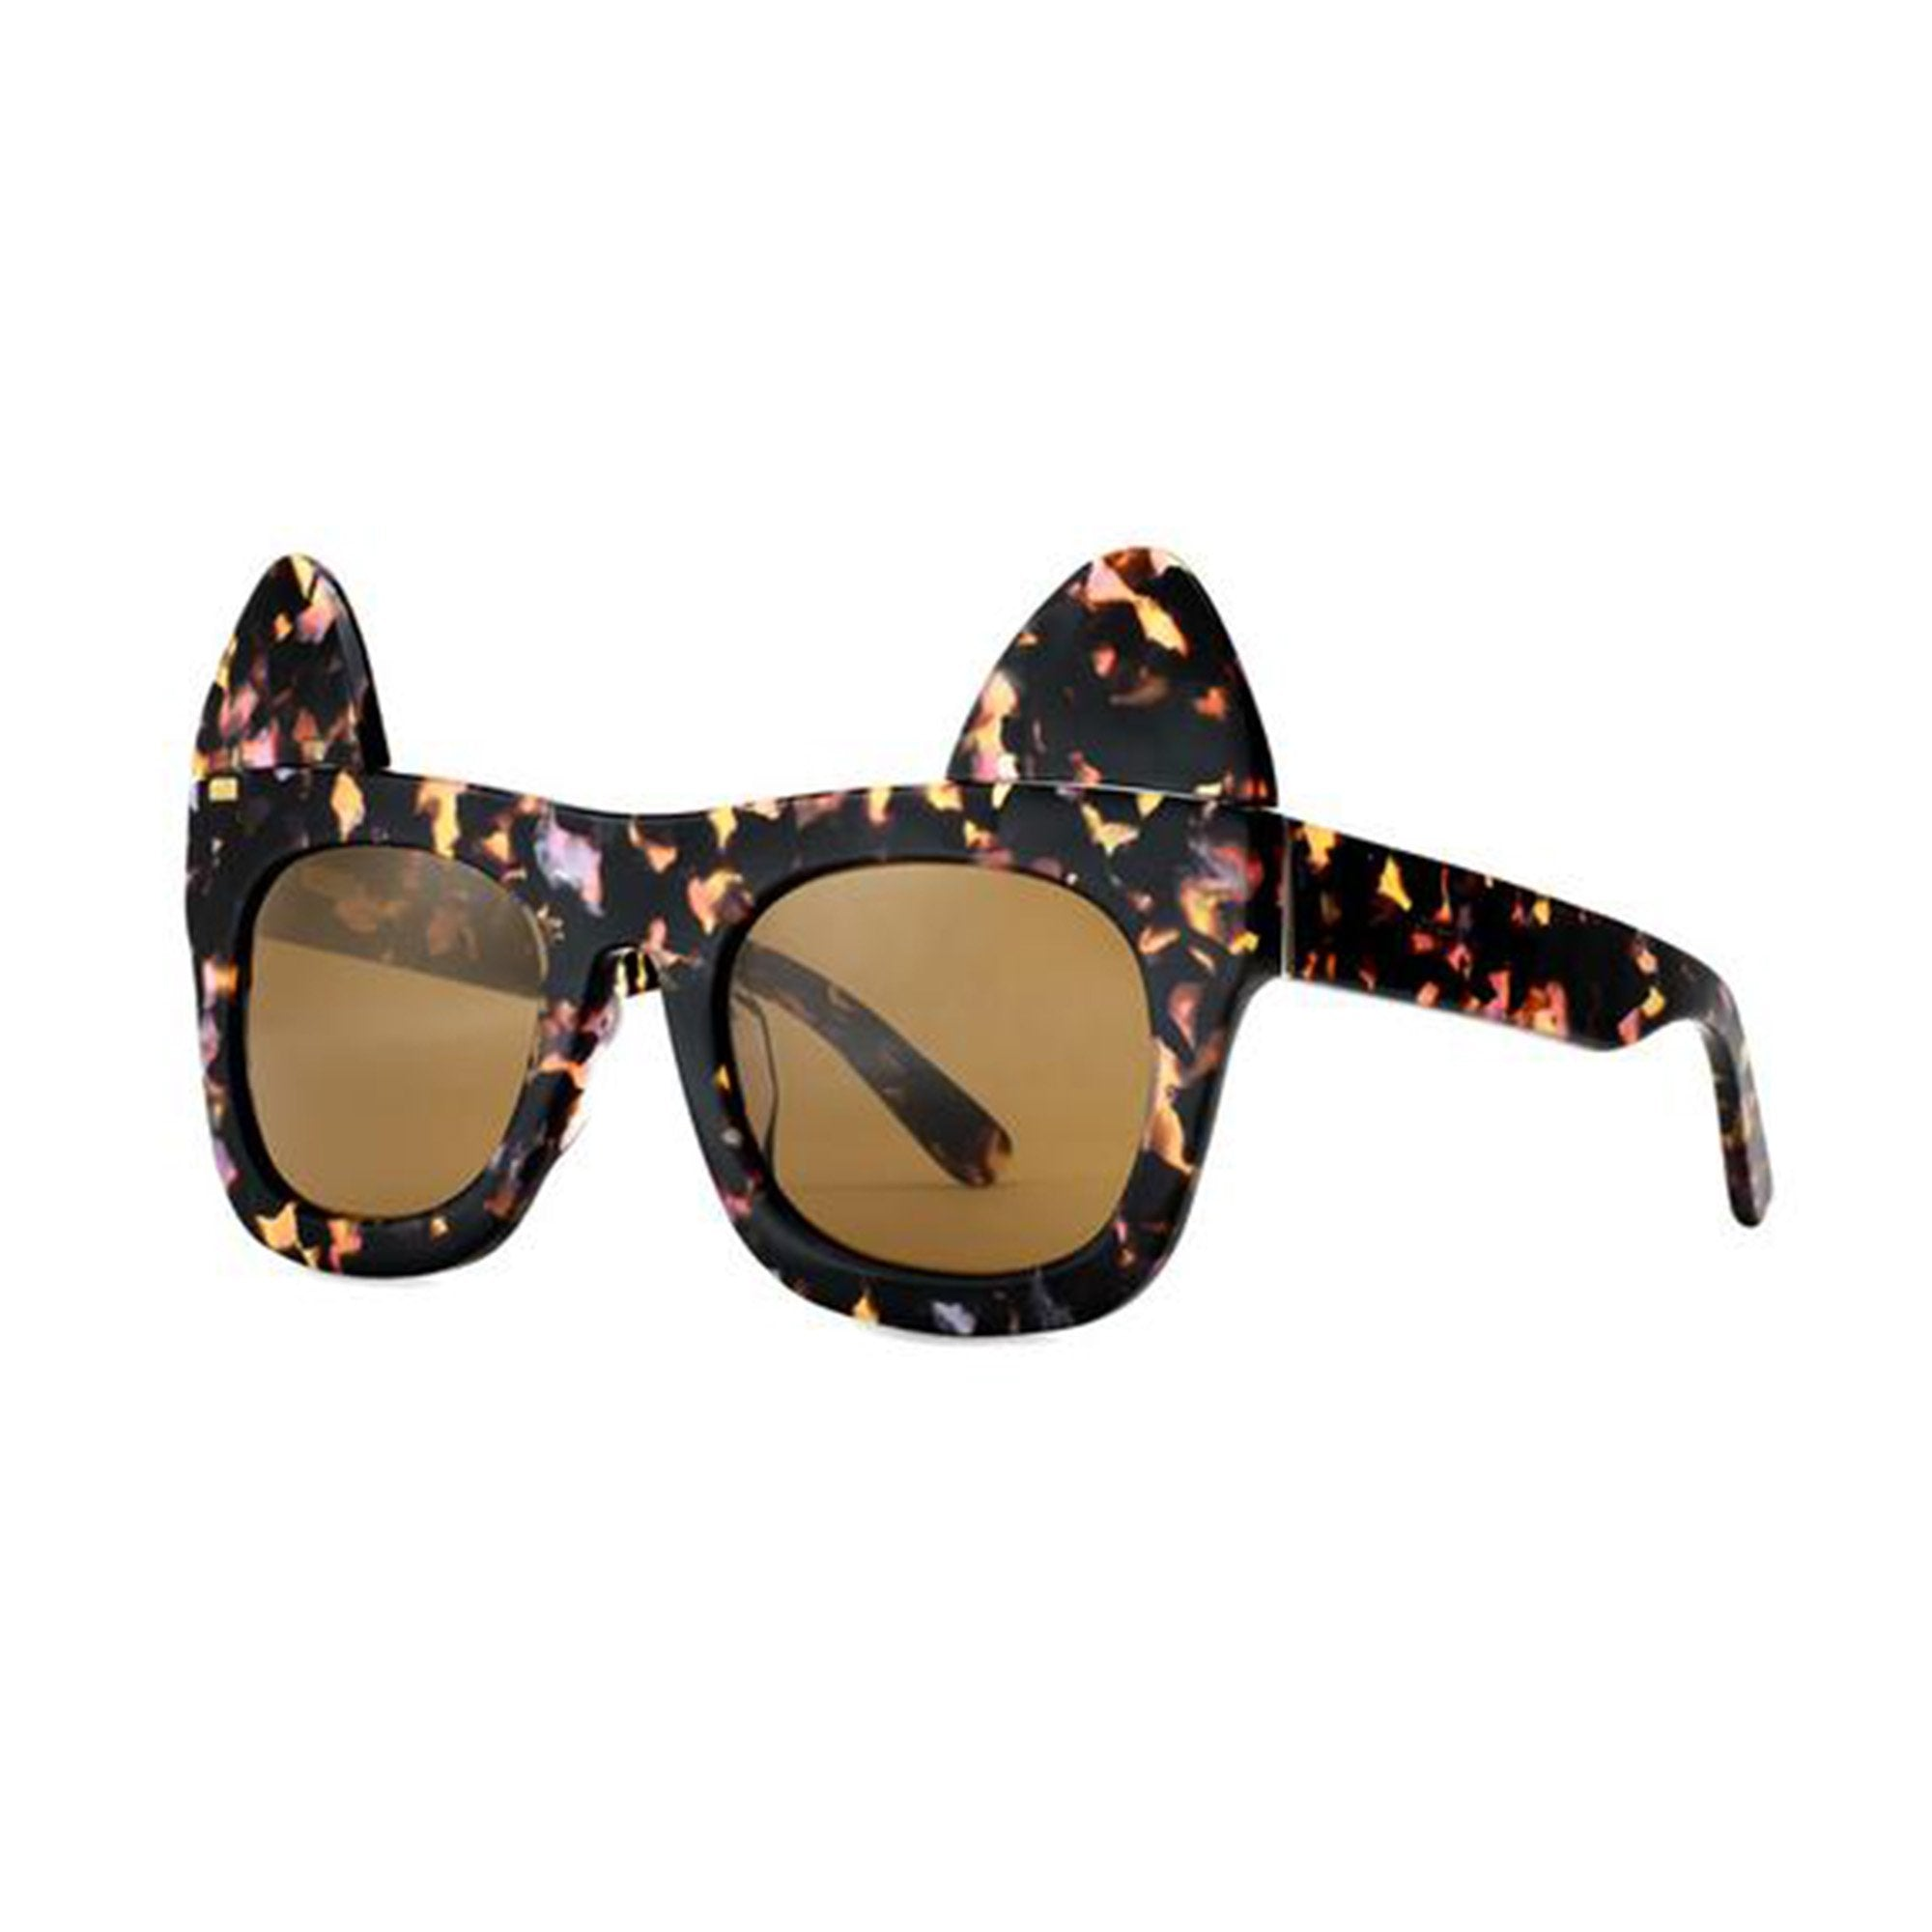 REVE by RENE 9 lives sunglasses